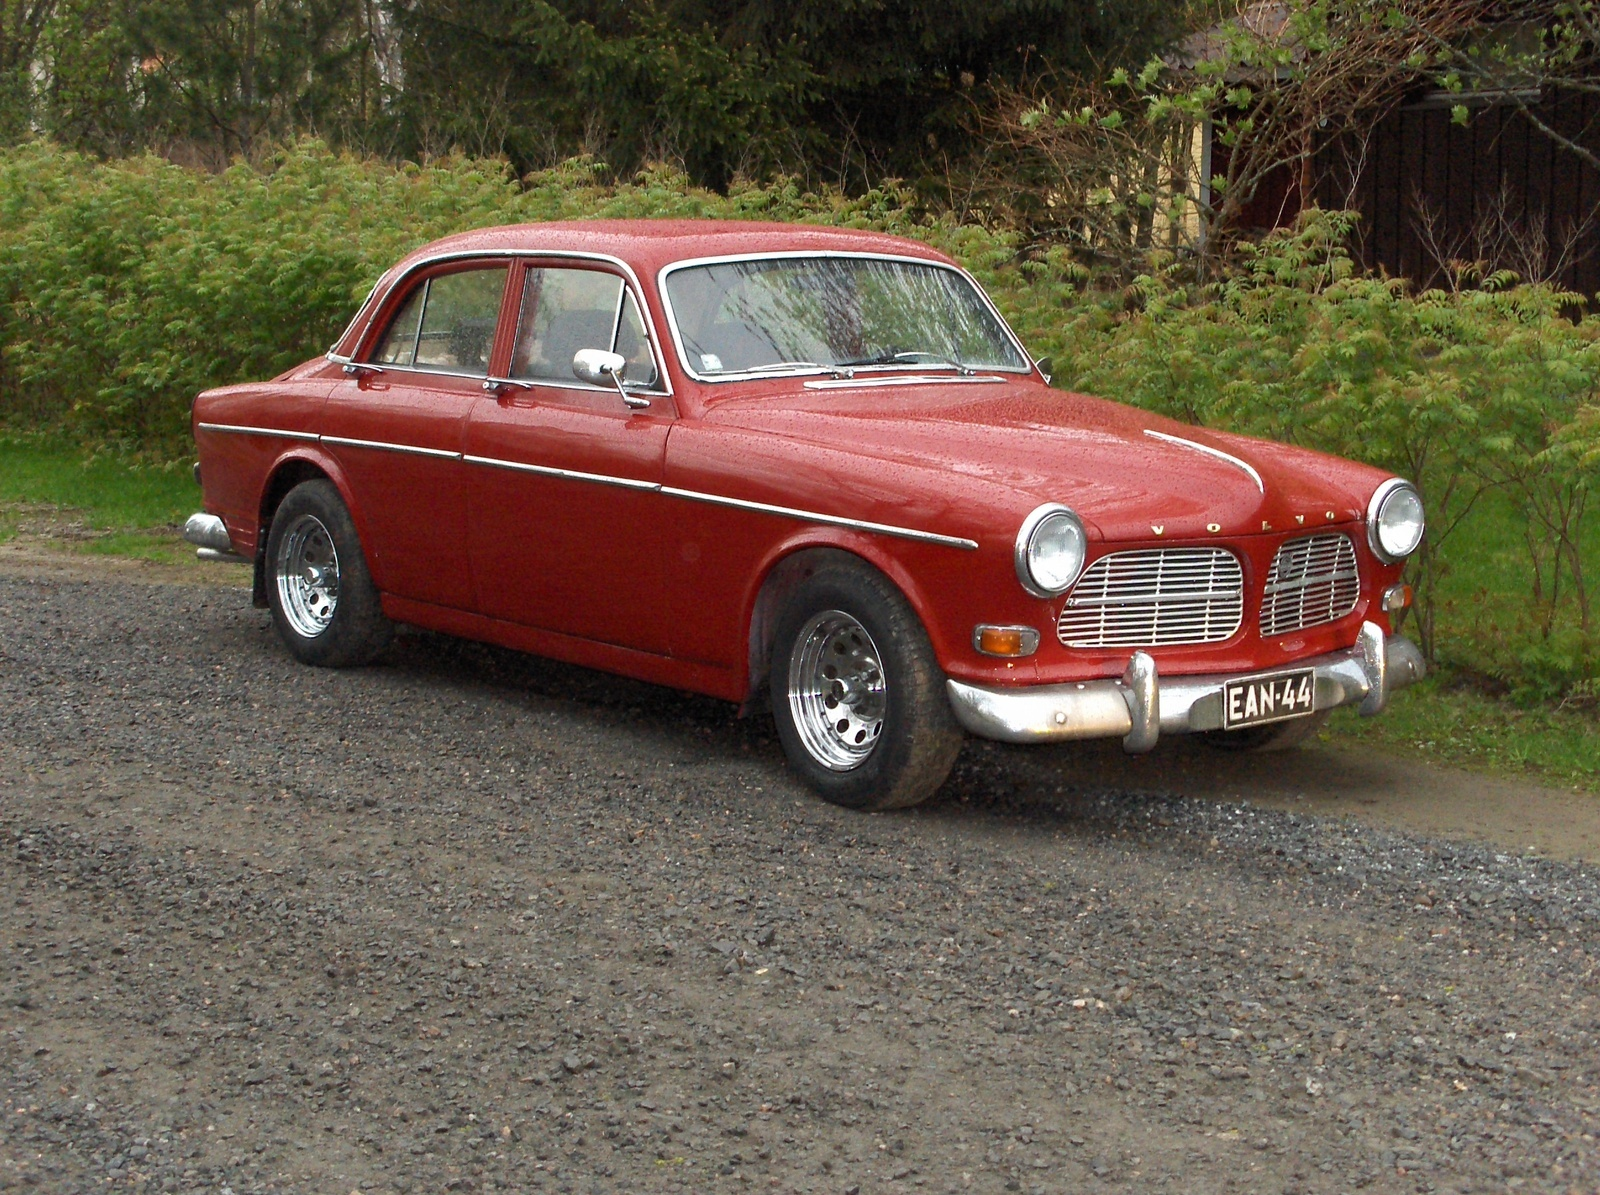 Volvo C30 For Sale >> 1965 Volvo 122 - Overview - CarGurus